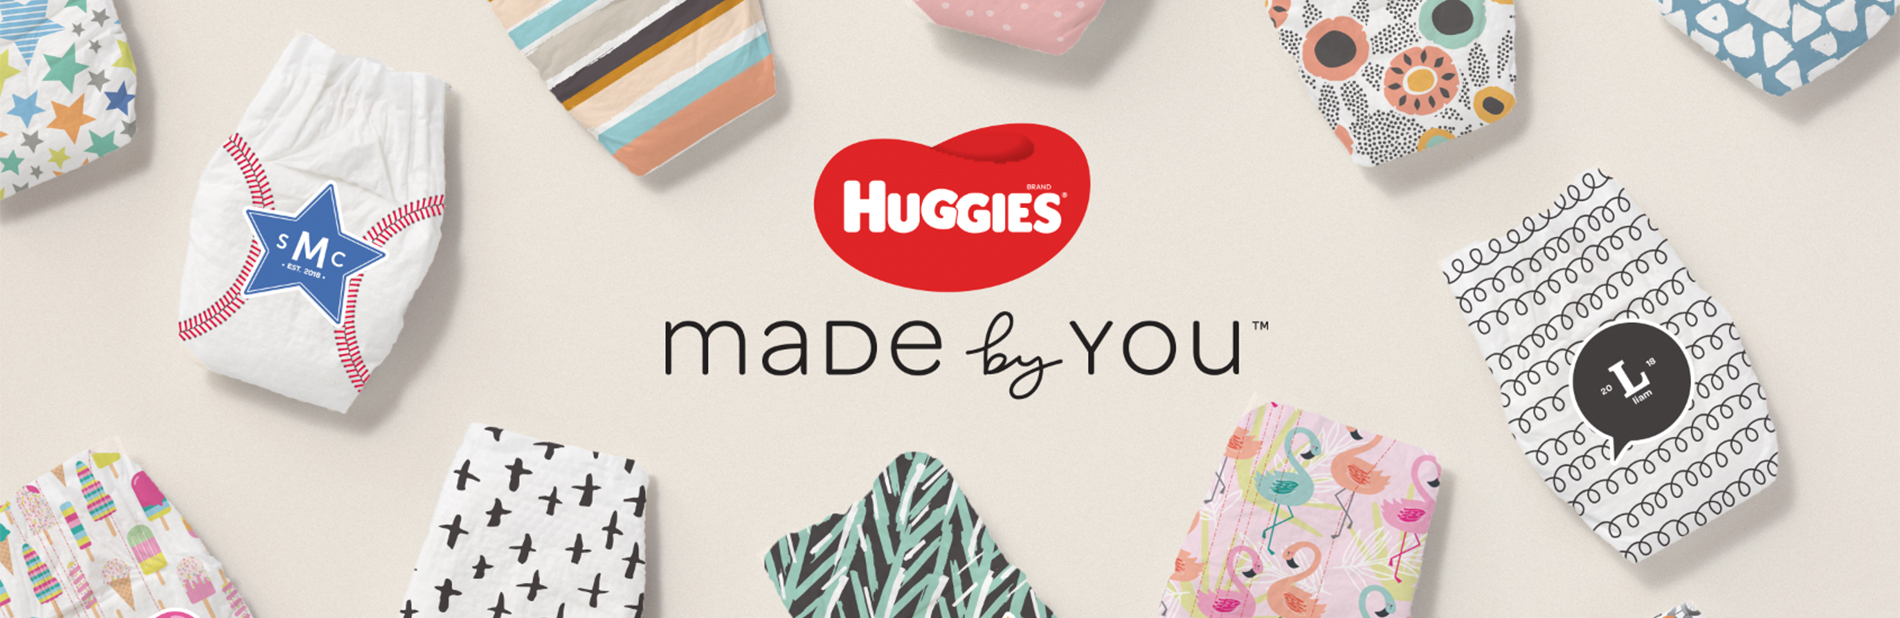 Huggies - Made by You